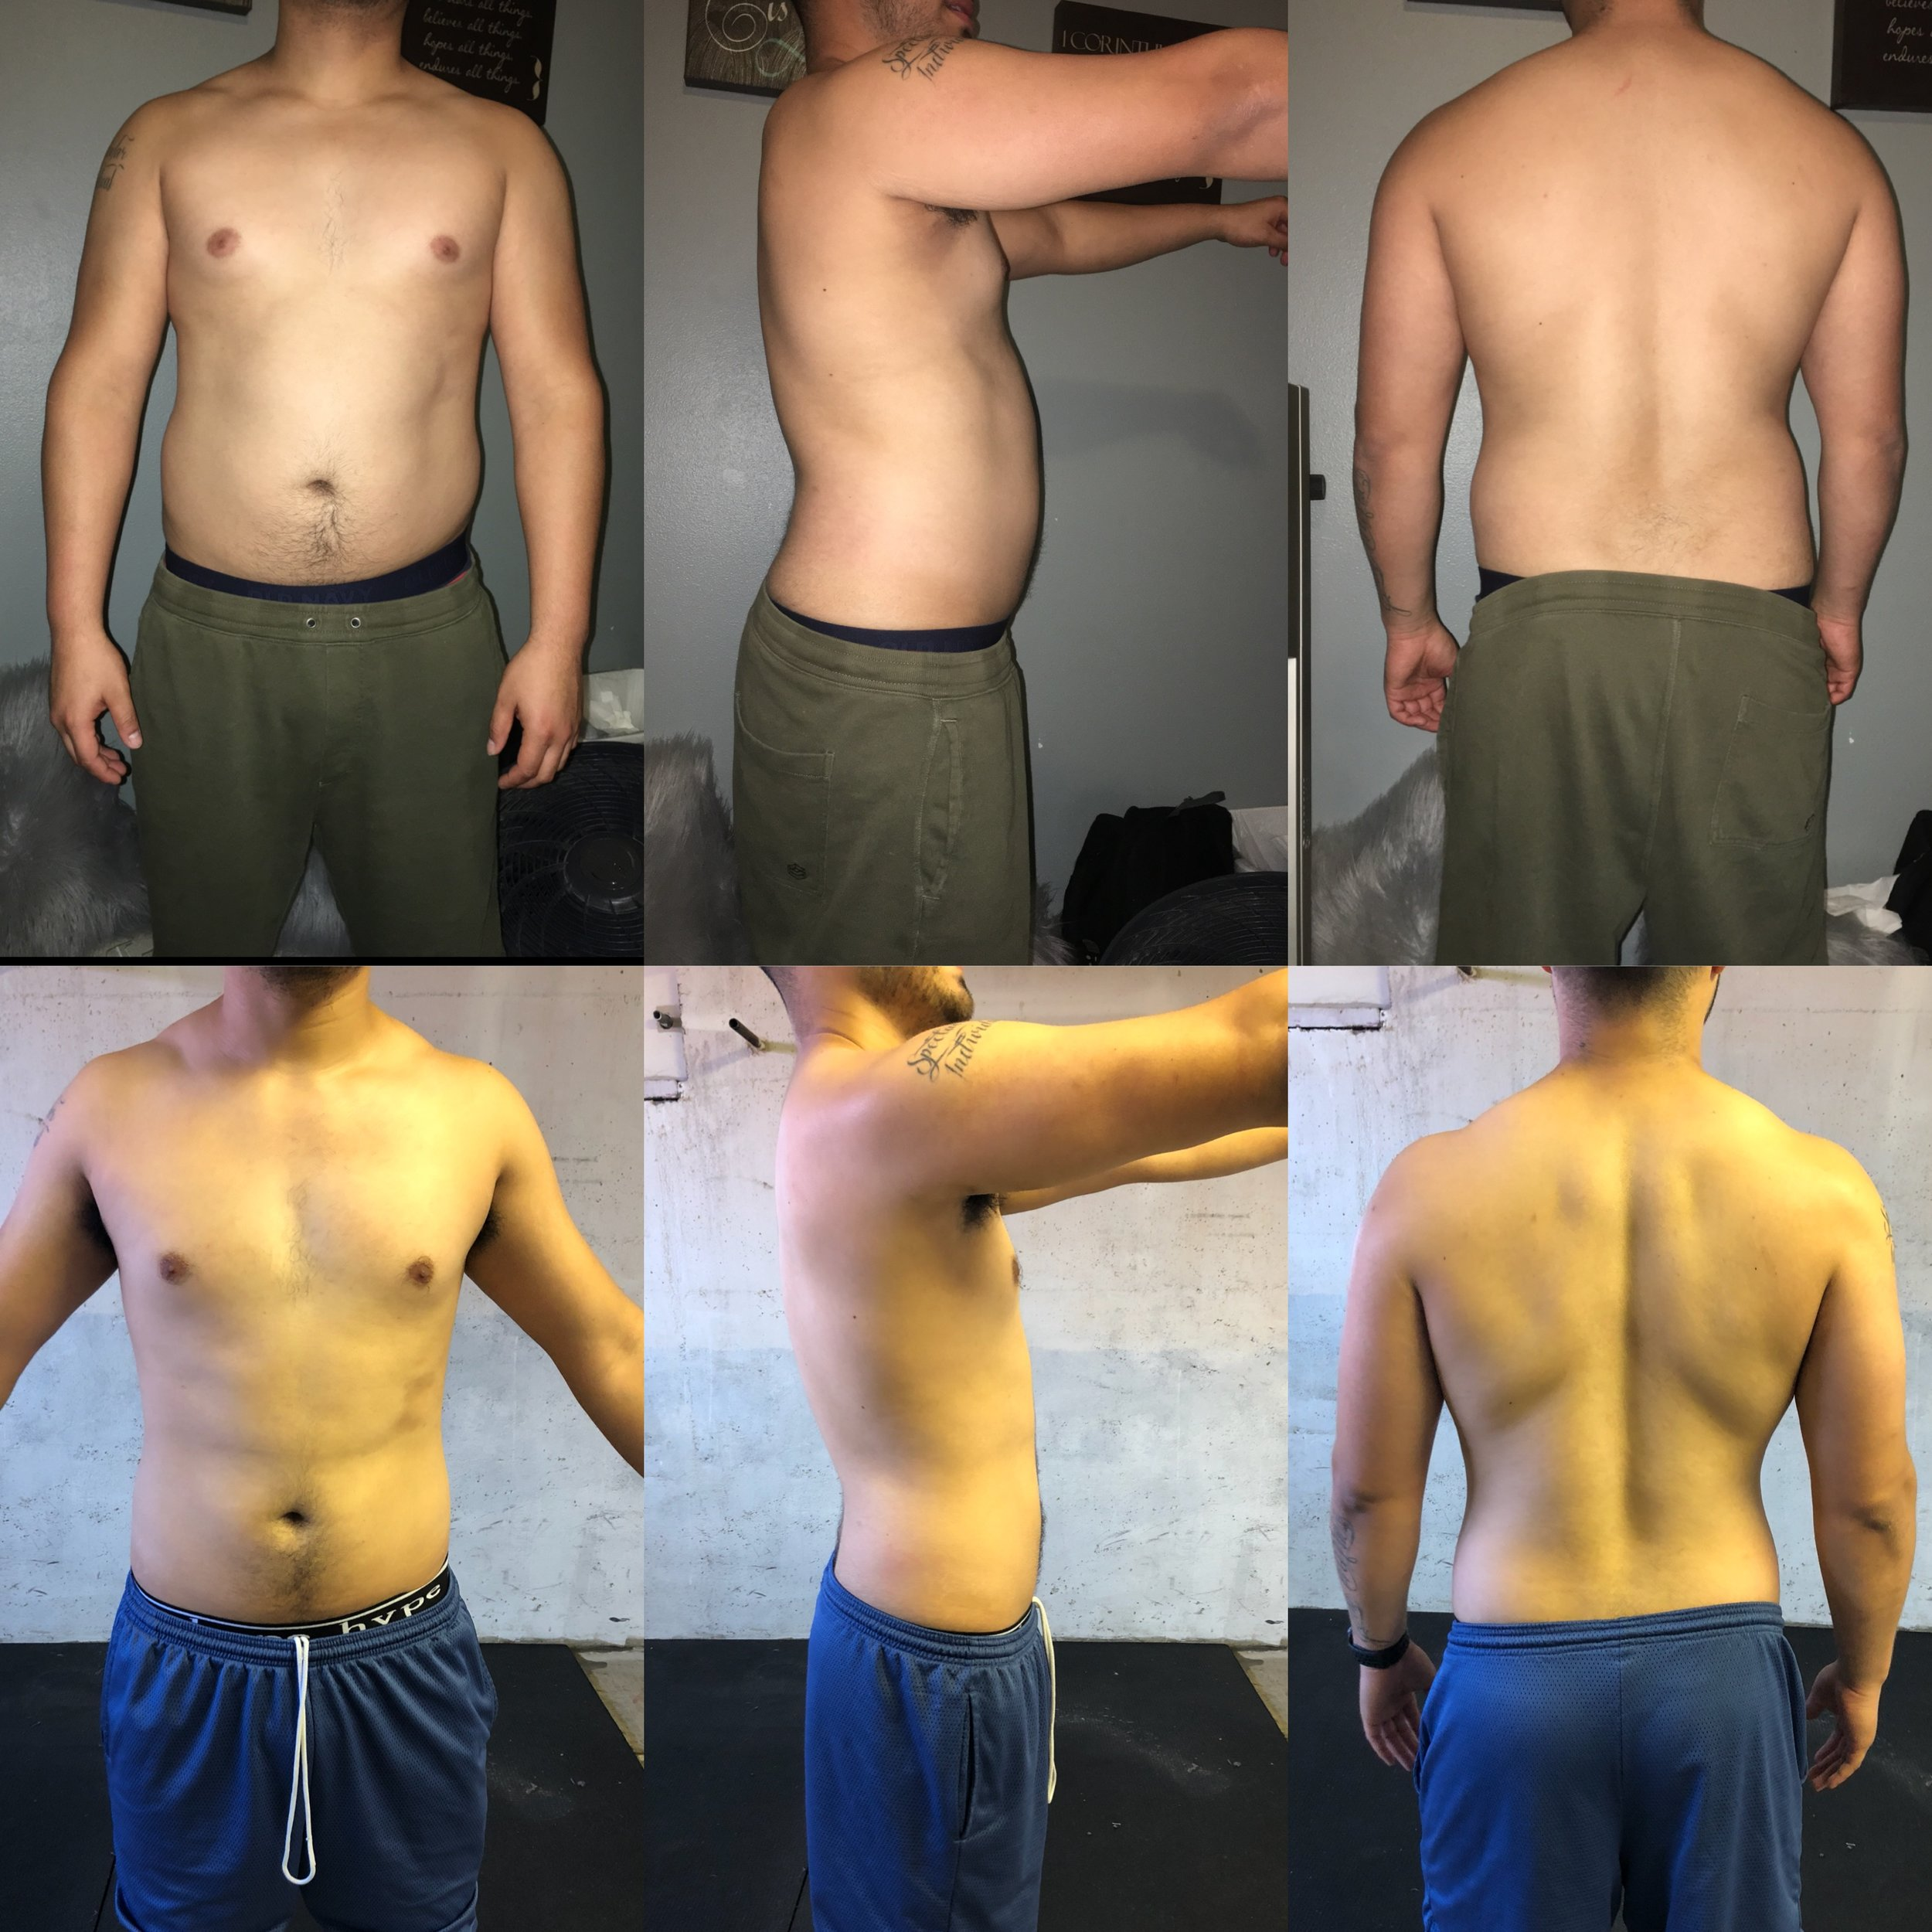 3 Month Dieting - Fernando and I only worked together on his nutrition program. He rarely weight trained, he mostly did cardio. He was busy with a full time job and a full load of college classes. He prioritized his time management, and completed his diet daily for a healthier lifestyle.